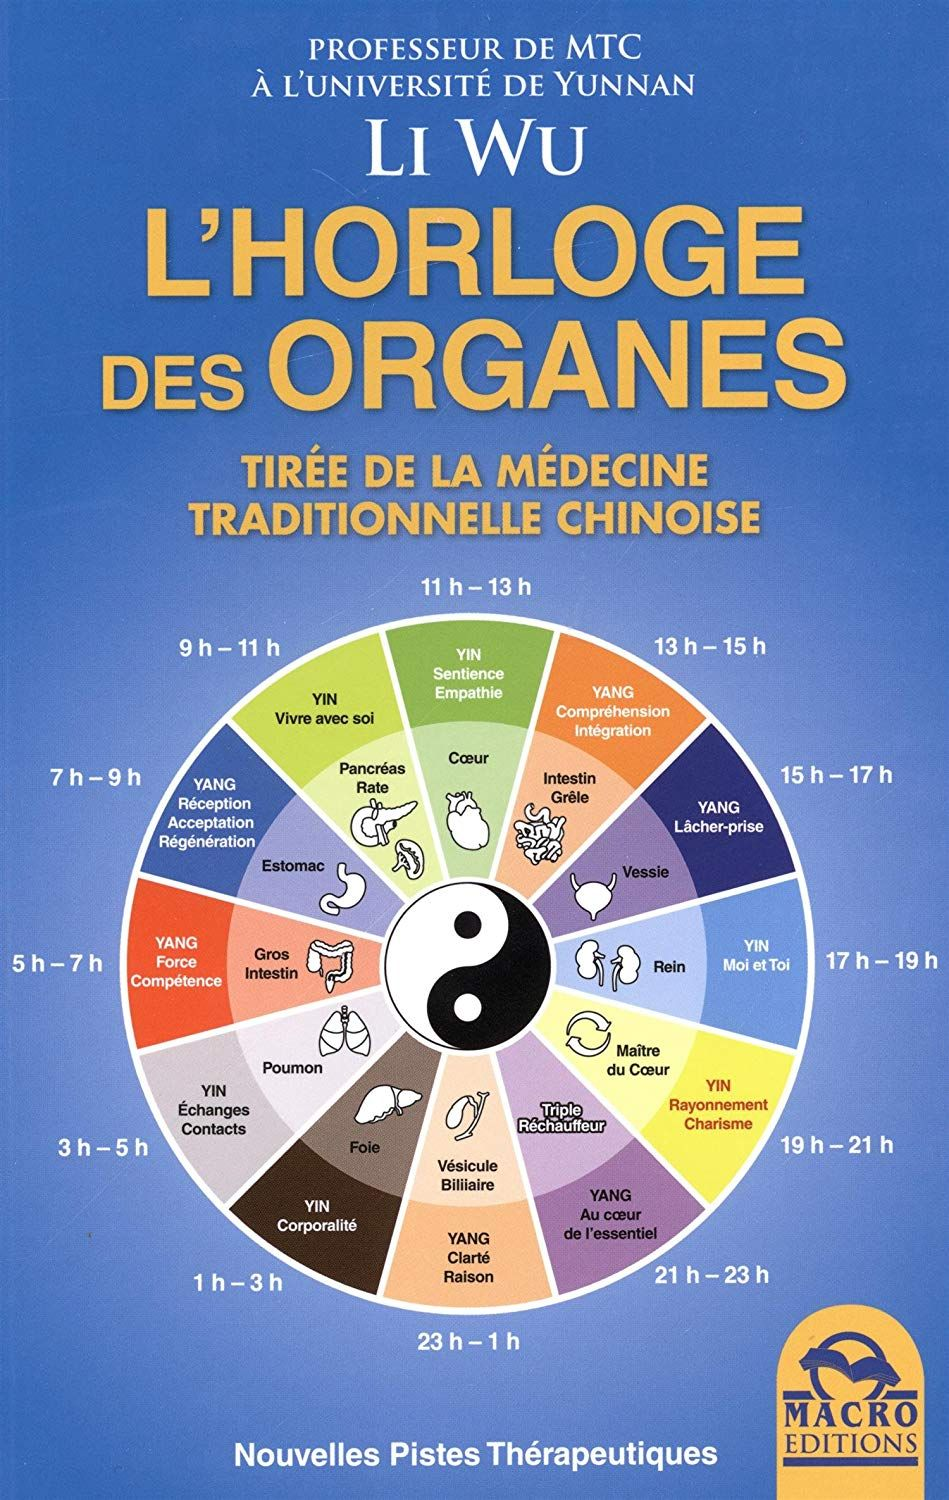 Amazon Fr L Horloge Des Organes Tiree De La Medecine Traditionnelle Chinoise Wu Li Li Medecine Medecine Traditionnelle Chinoise Medecine Traditionnelle